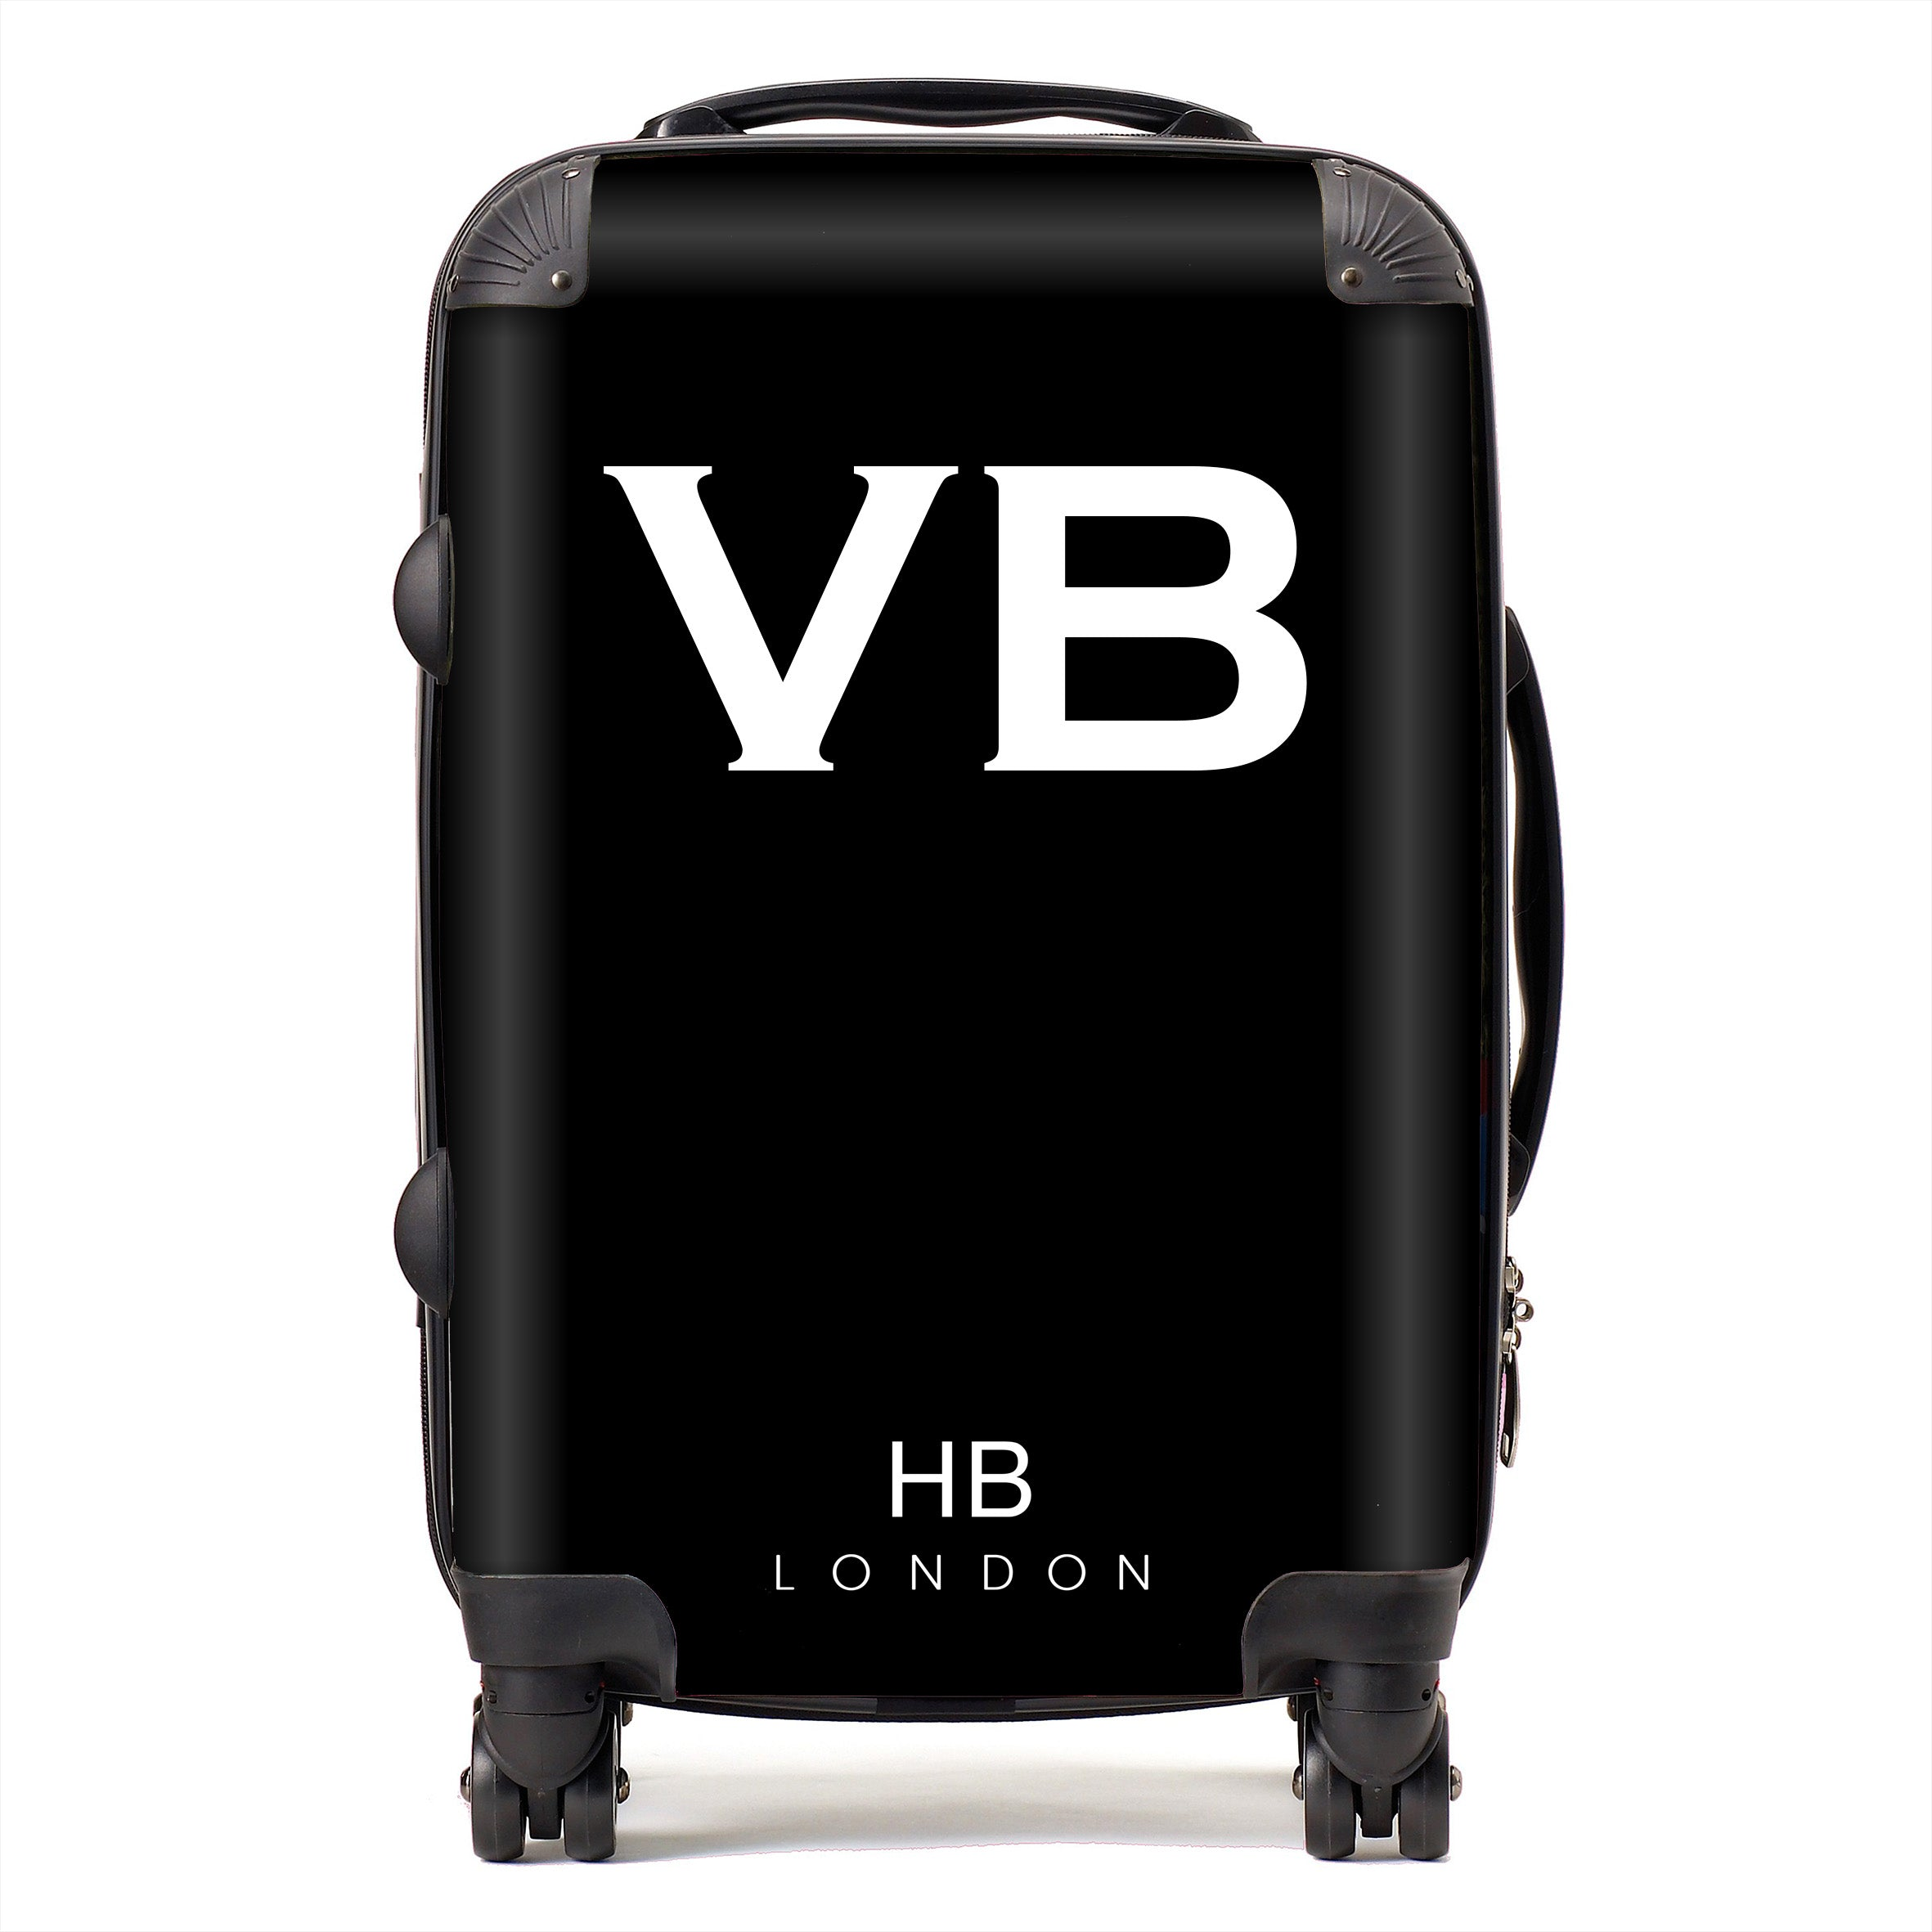 Hb London The Original Personalised Initial Suitcases